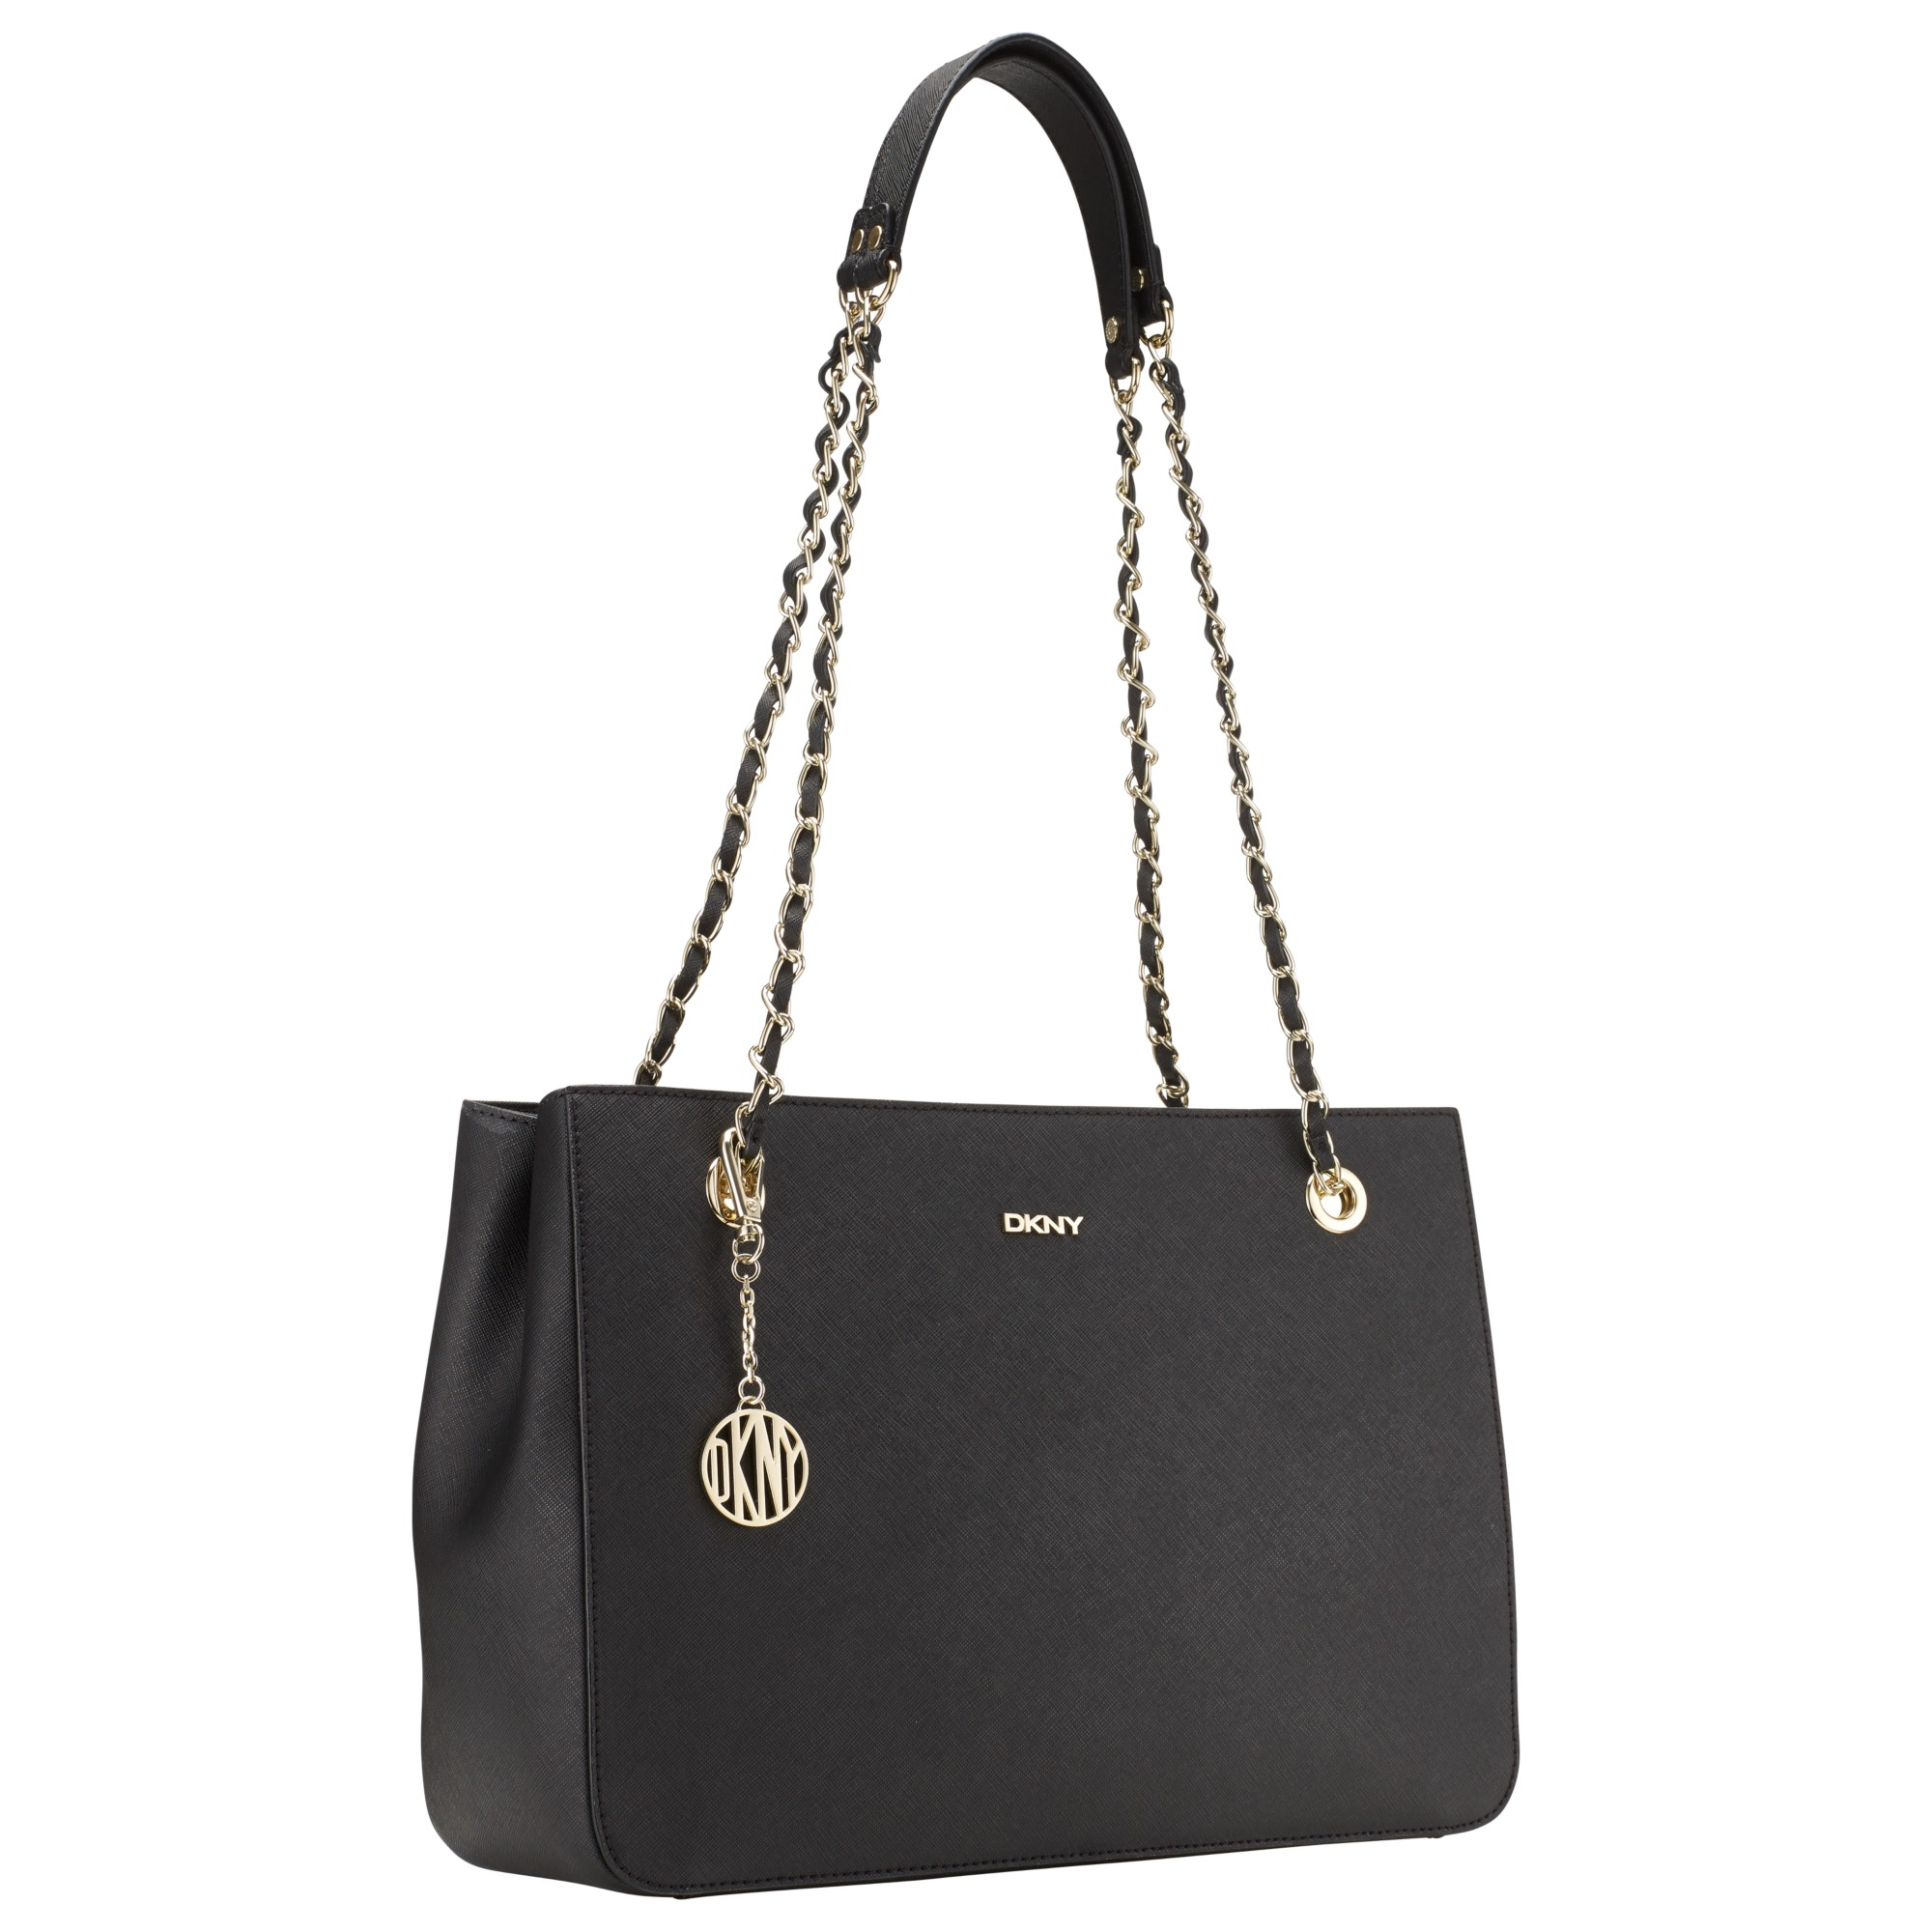 dkny bryant park saffiano leather shopper chain bag in black lyst. Black Bedroom Furniture Sets. Home Design Ideas